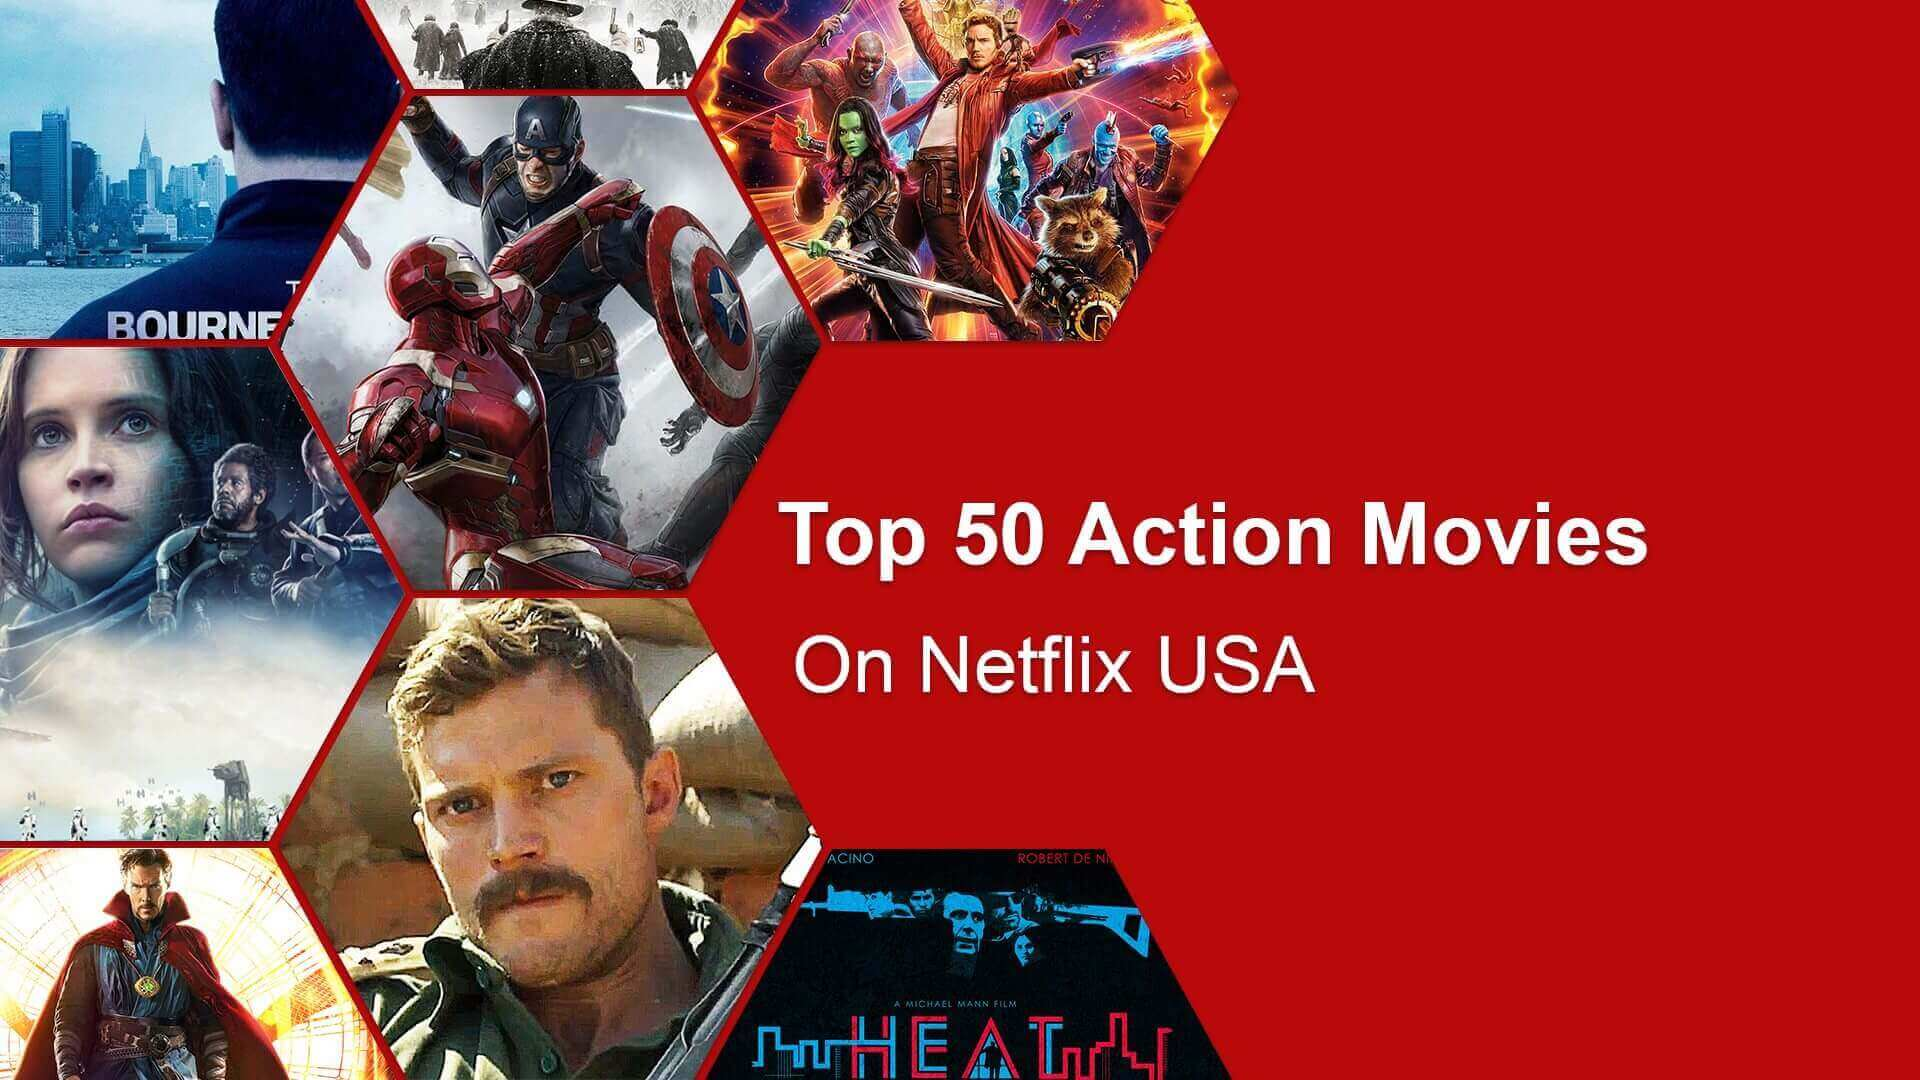 Top 50 Action Movies On Netflix June 2018 Whats On Netflix